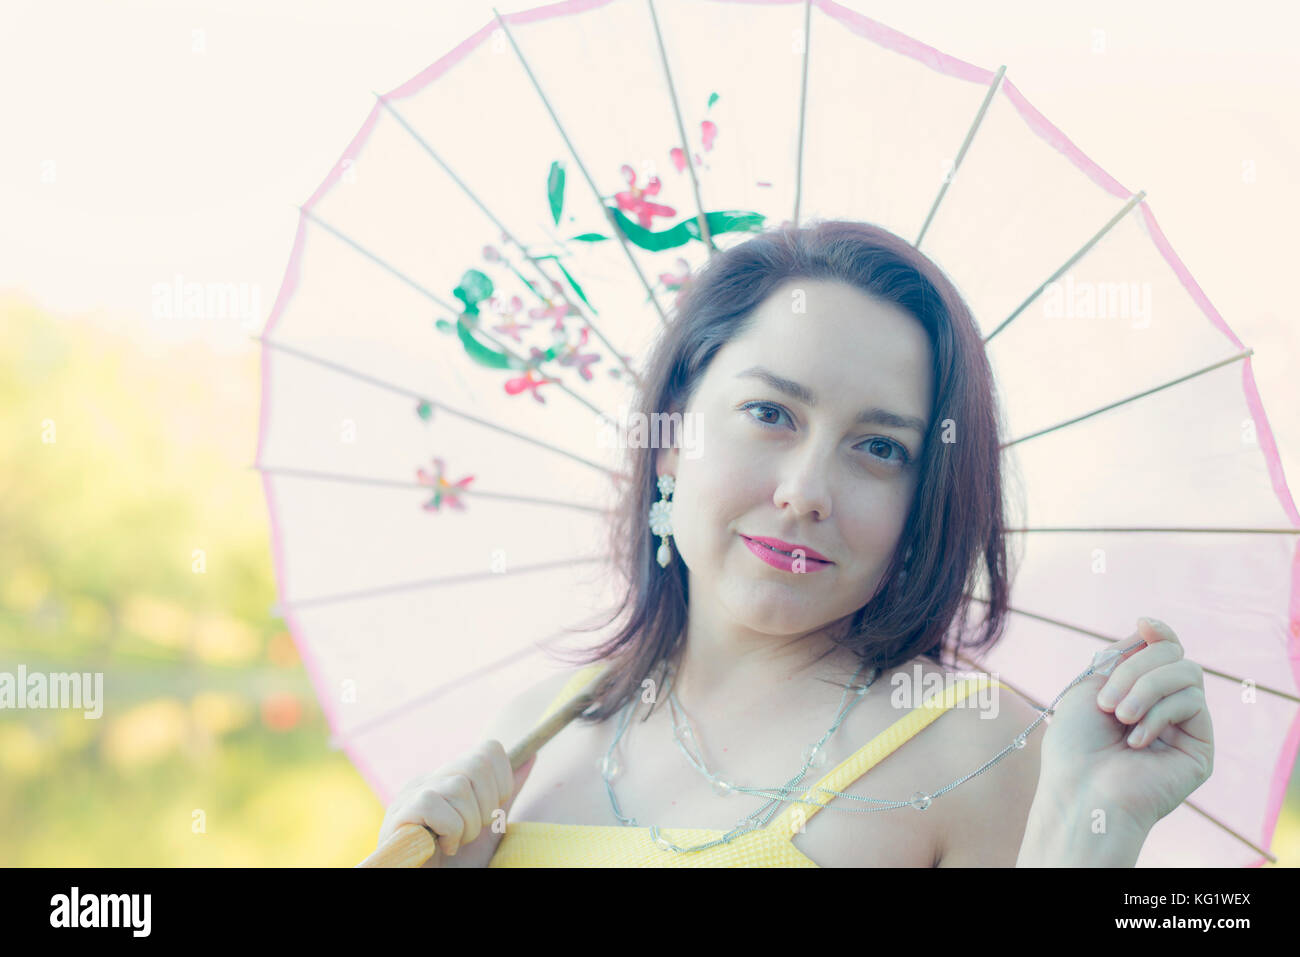 Woman with light shining through a parasol - Stock Image